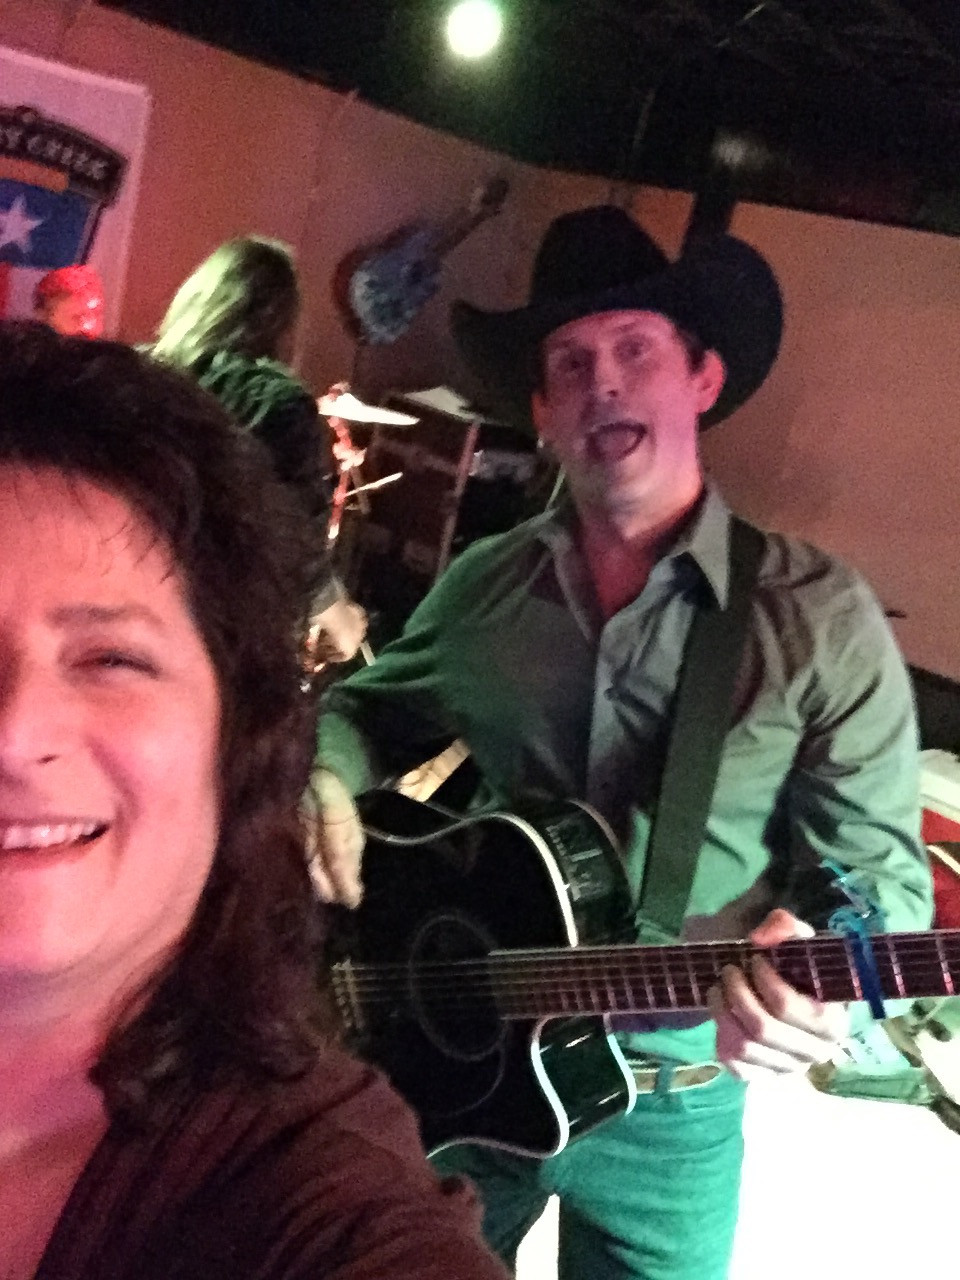 With Dusty from King George, New Year's Eve, Boondocks in Lake Worth, TX